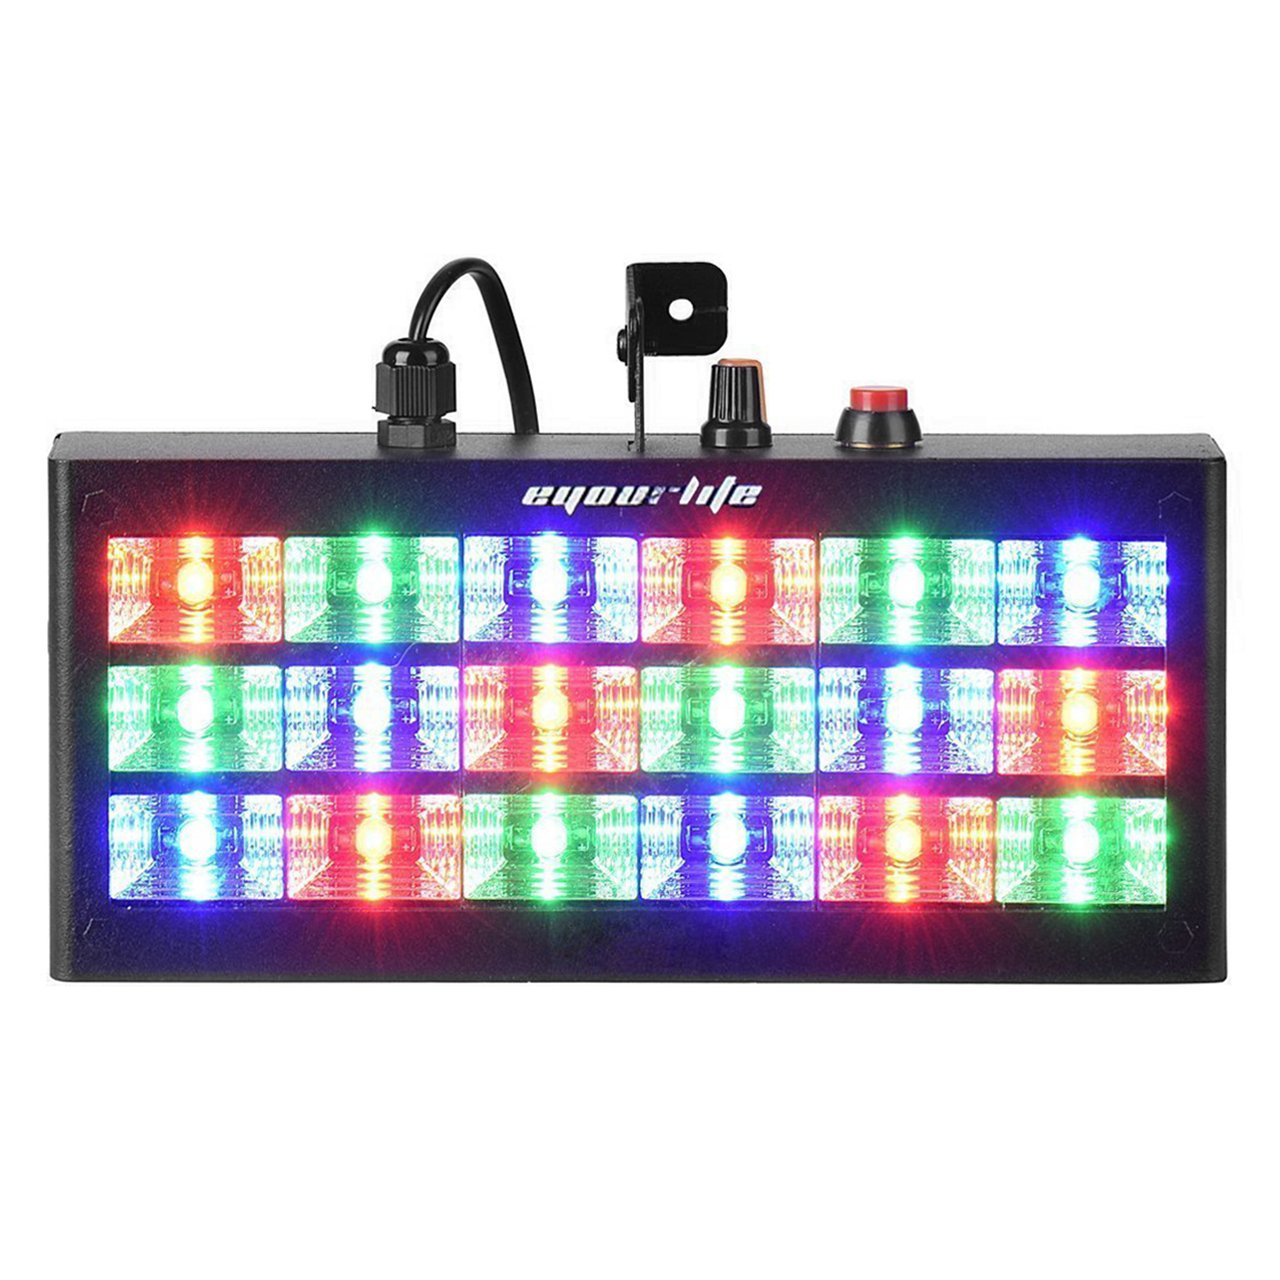 Eyourlife 18 LED 60w Strobe RGB Flash Light Stage Party Lighting Sound Activated for Club Disco Party Bar DJ by Eyourlife